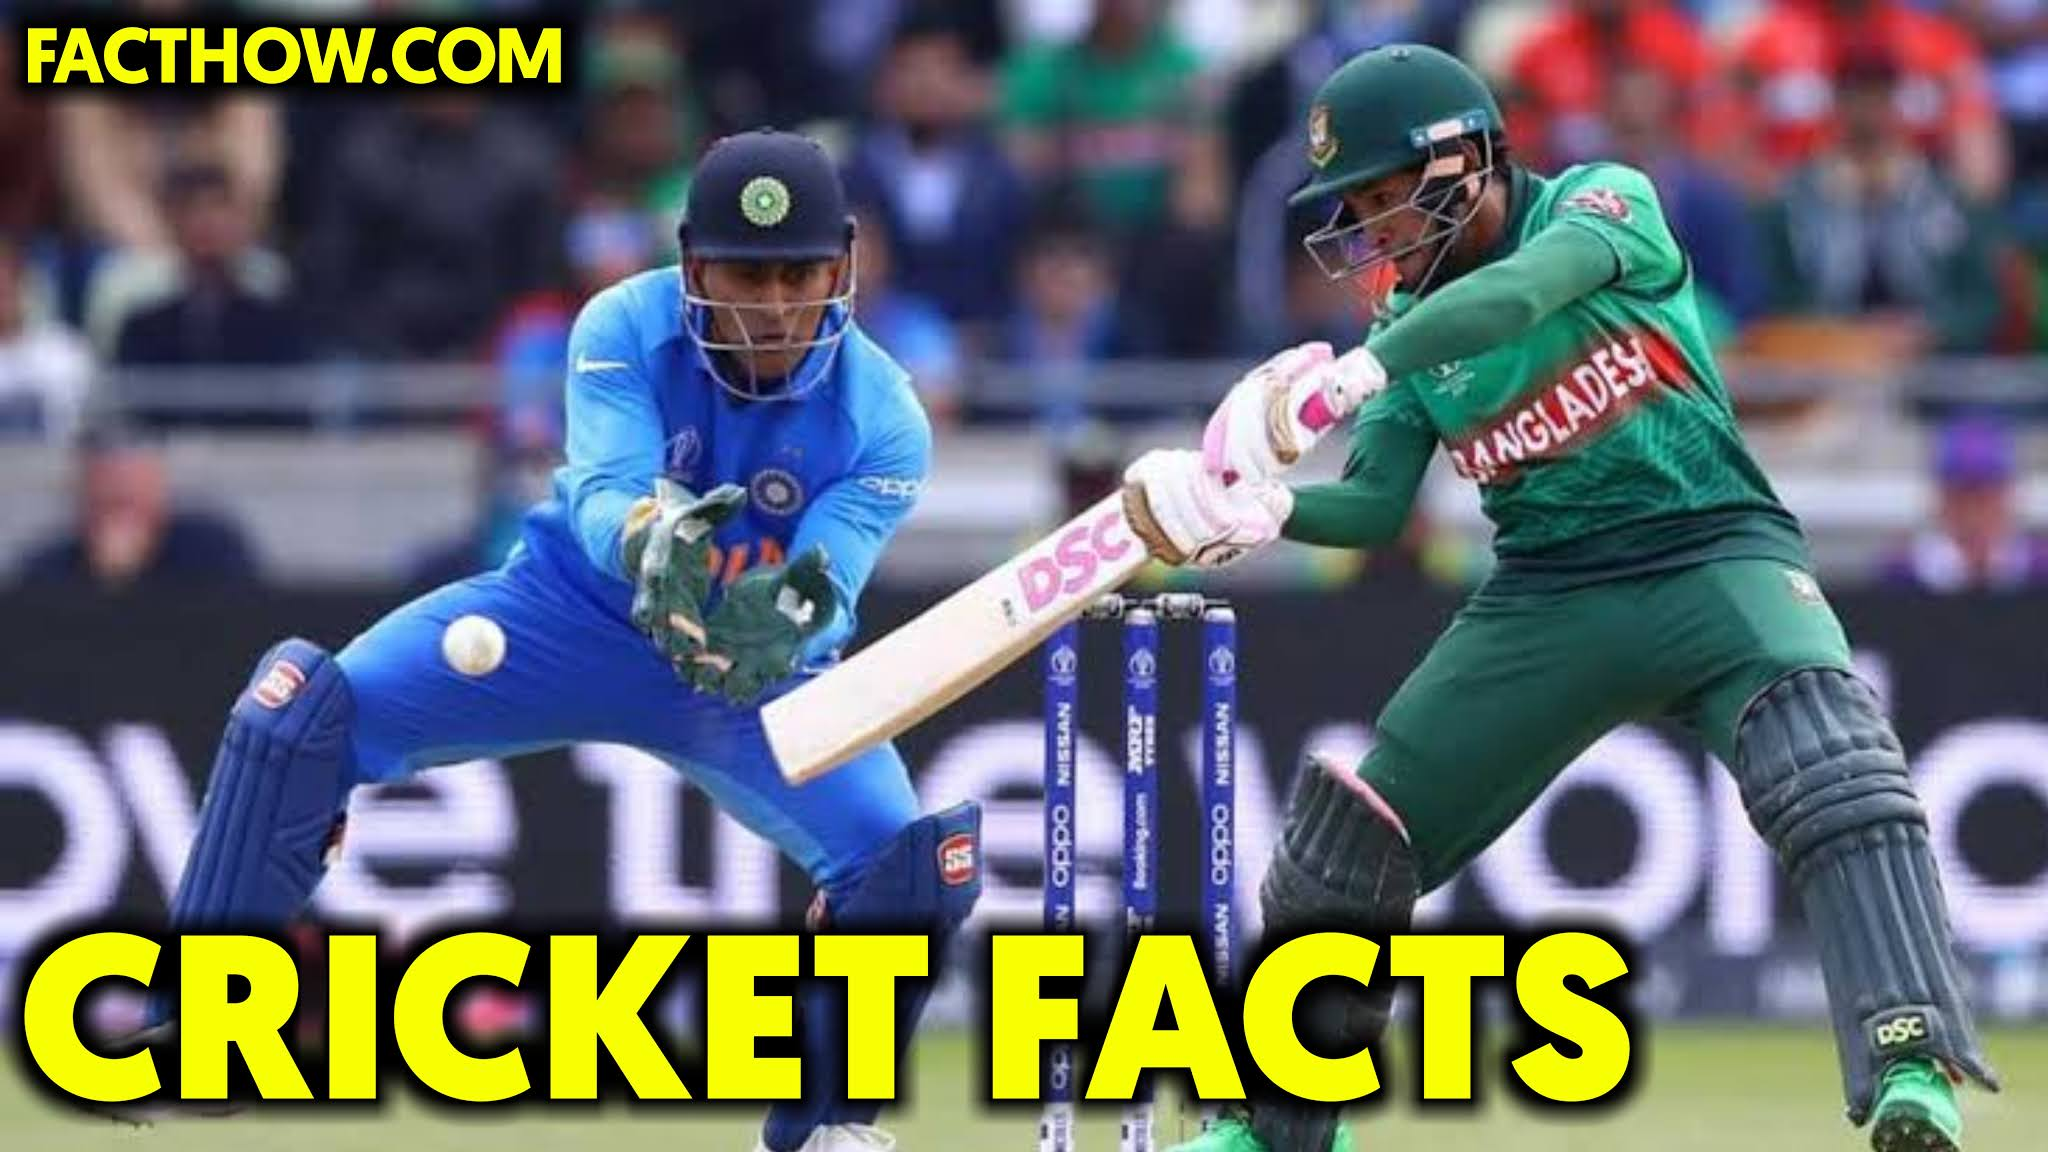 100 interesting facts about cricket